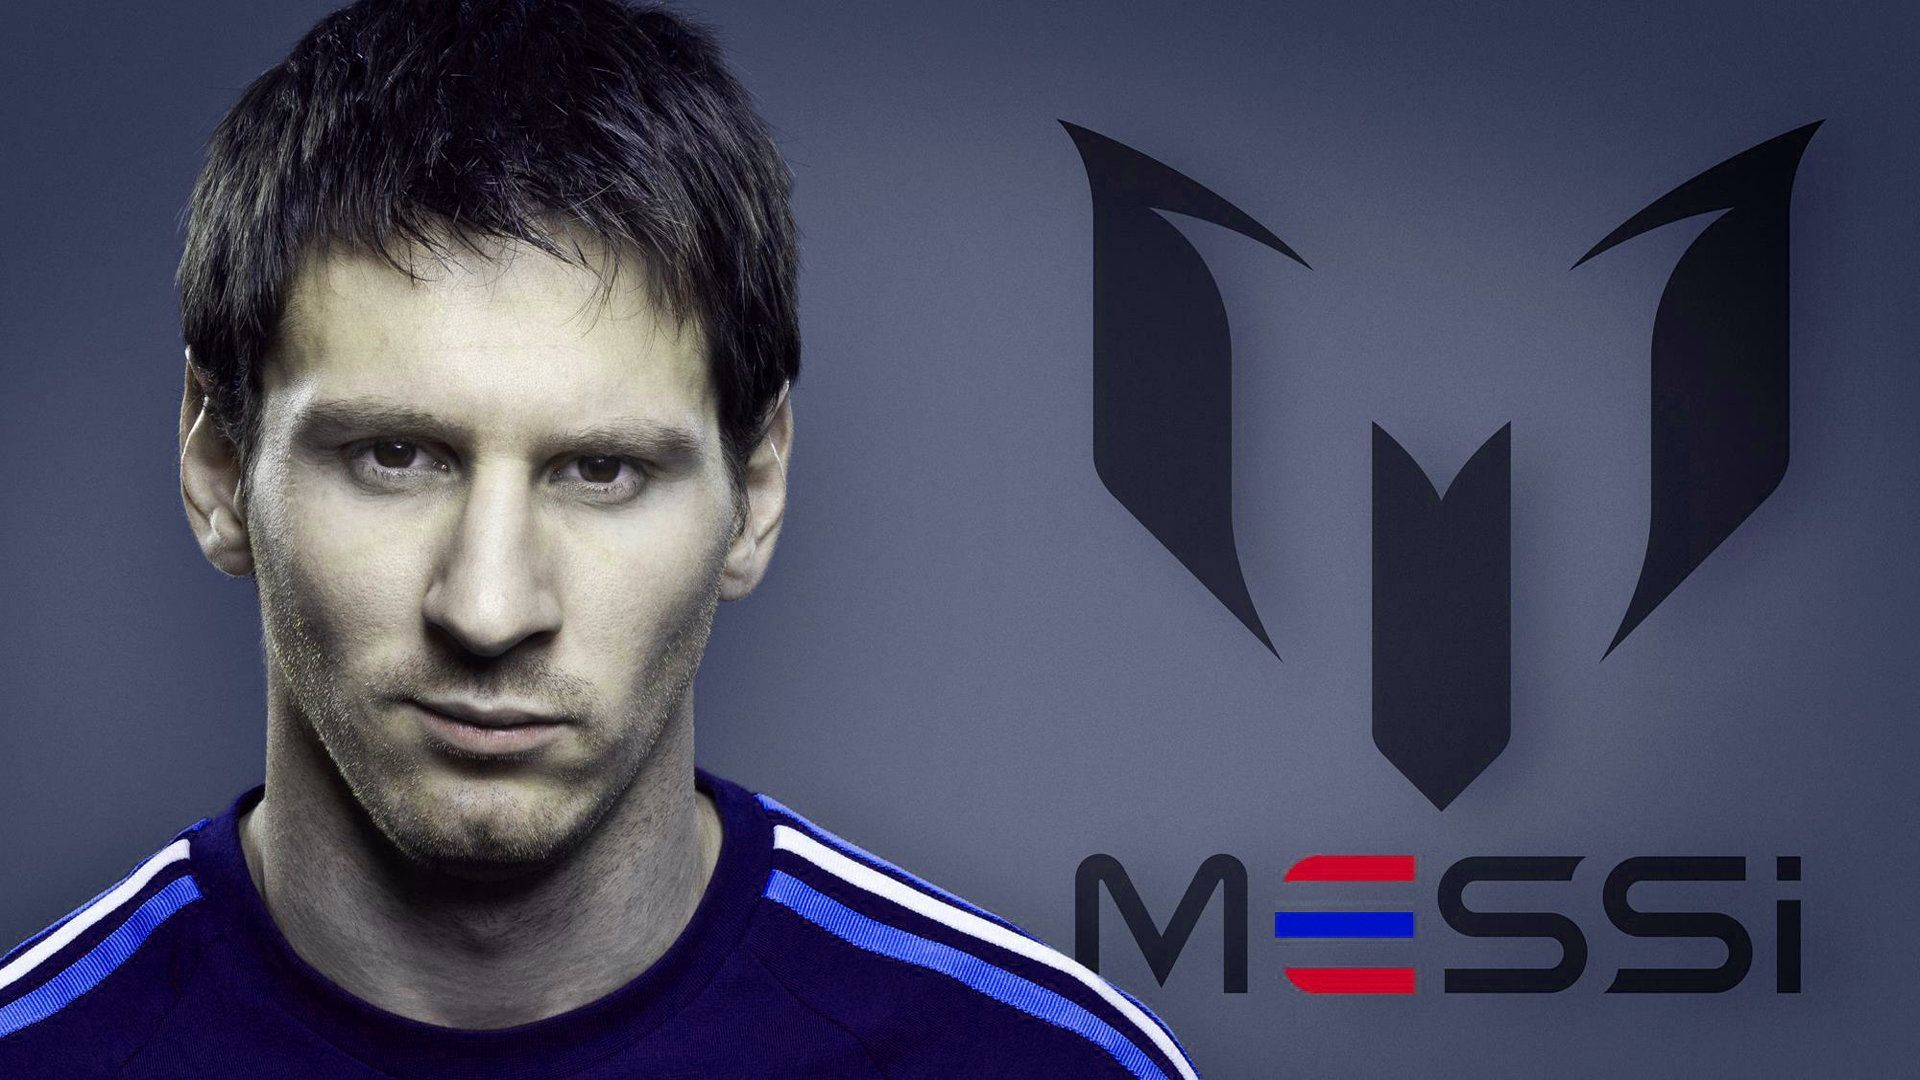 hd lionel messi football player free background mobile desktop download wallpapers